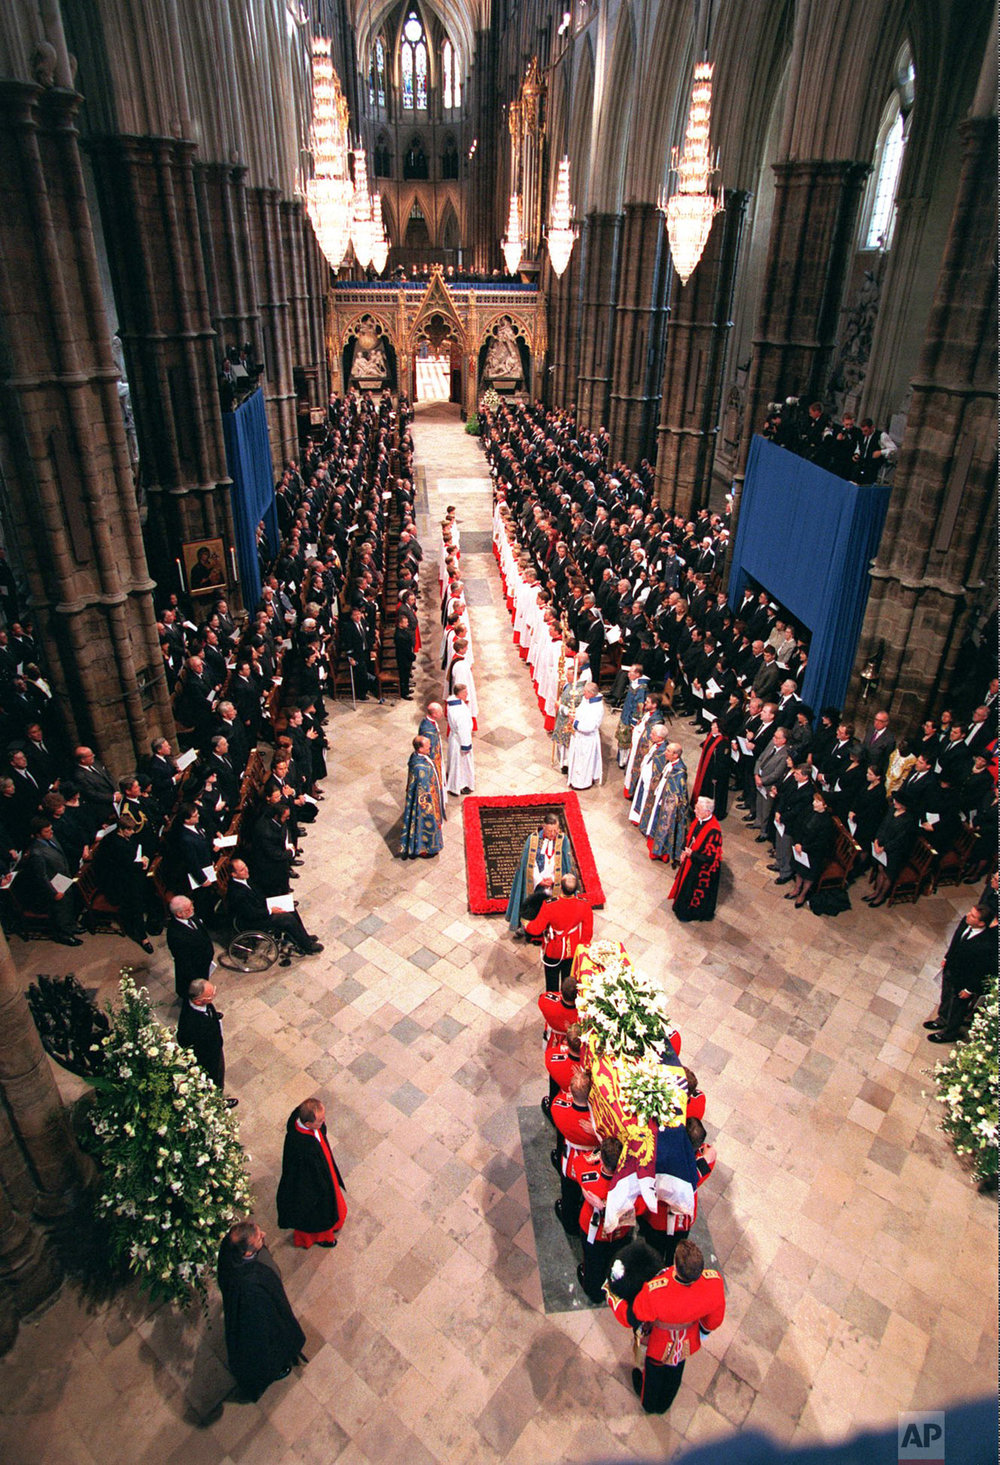 The funeral of Princess Diana in 1997